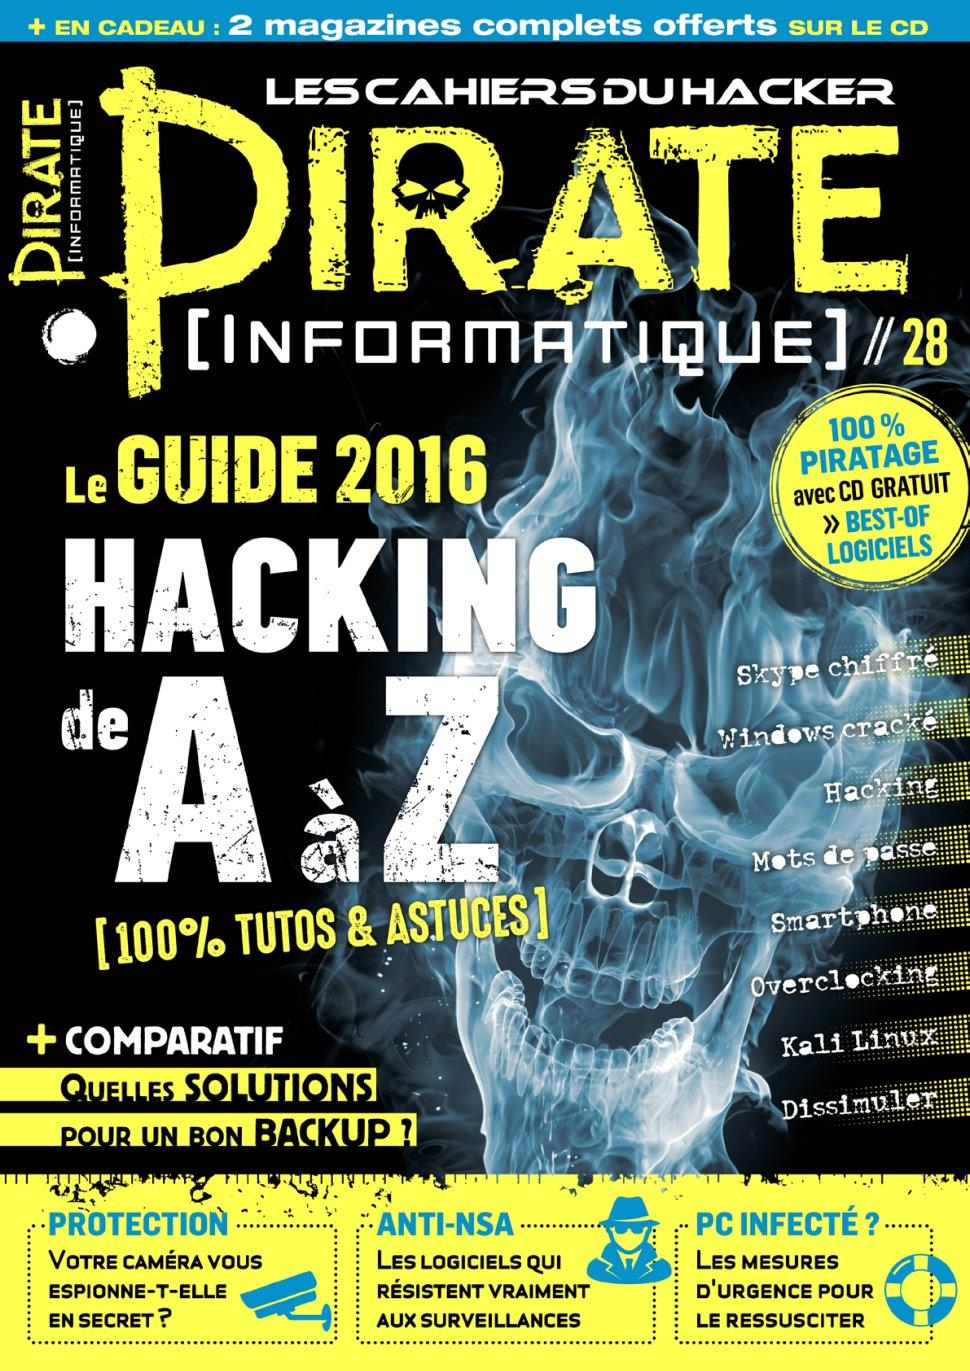 télécharger Pirate Informatique N°28 - Fevrier-Avril 2016